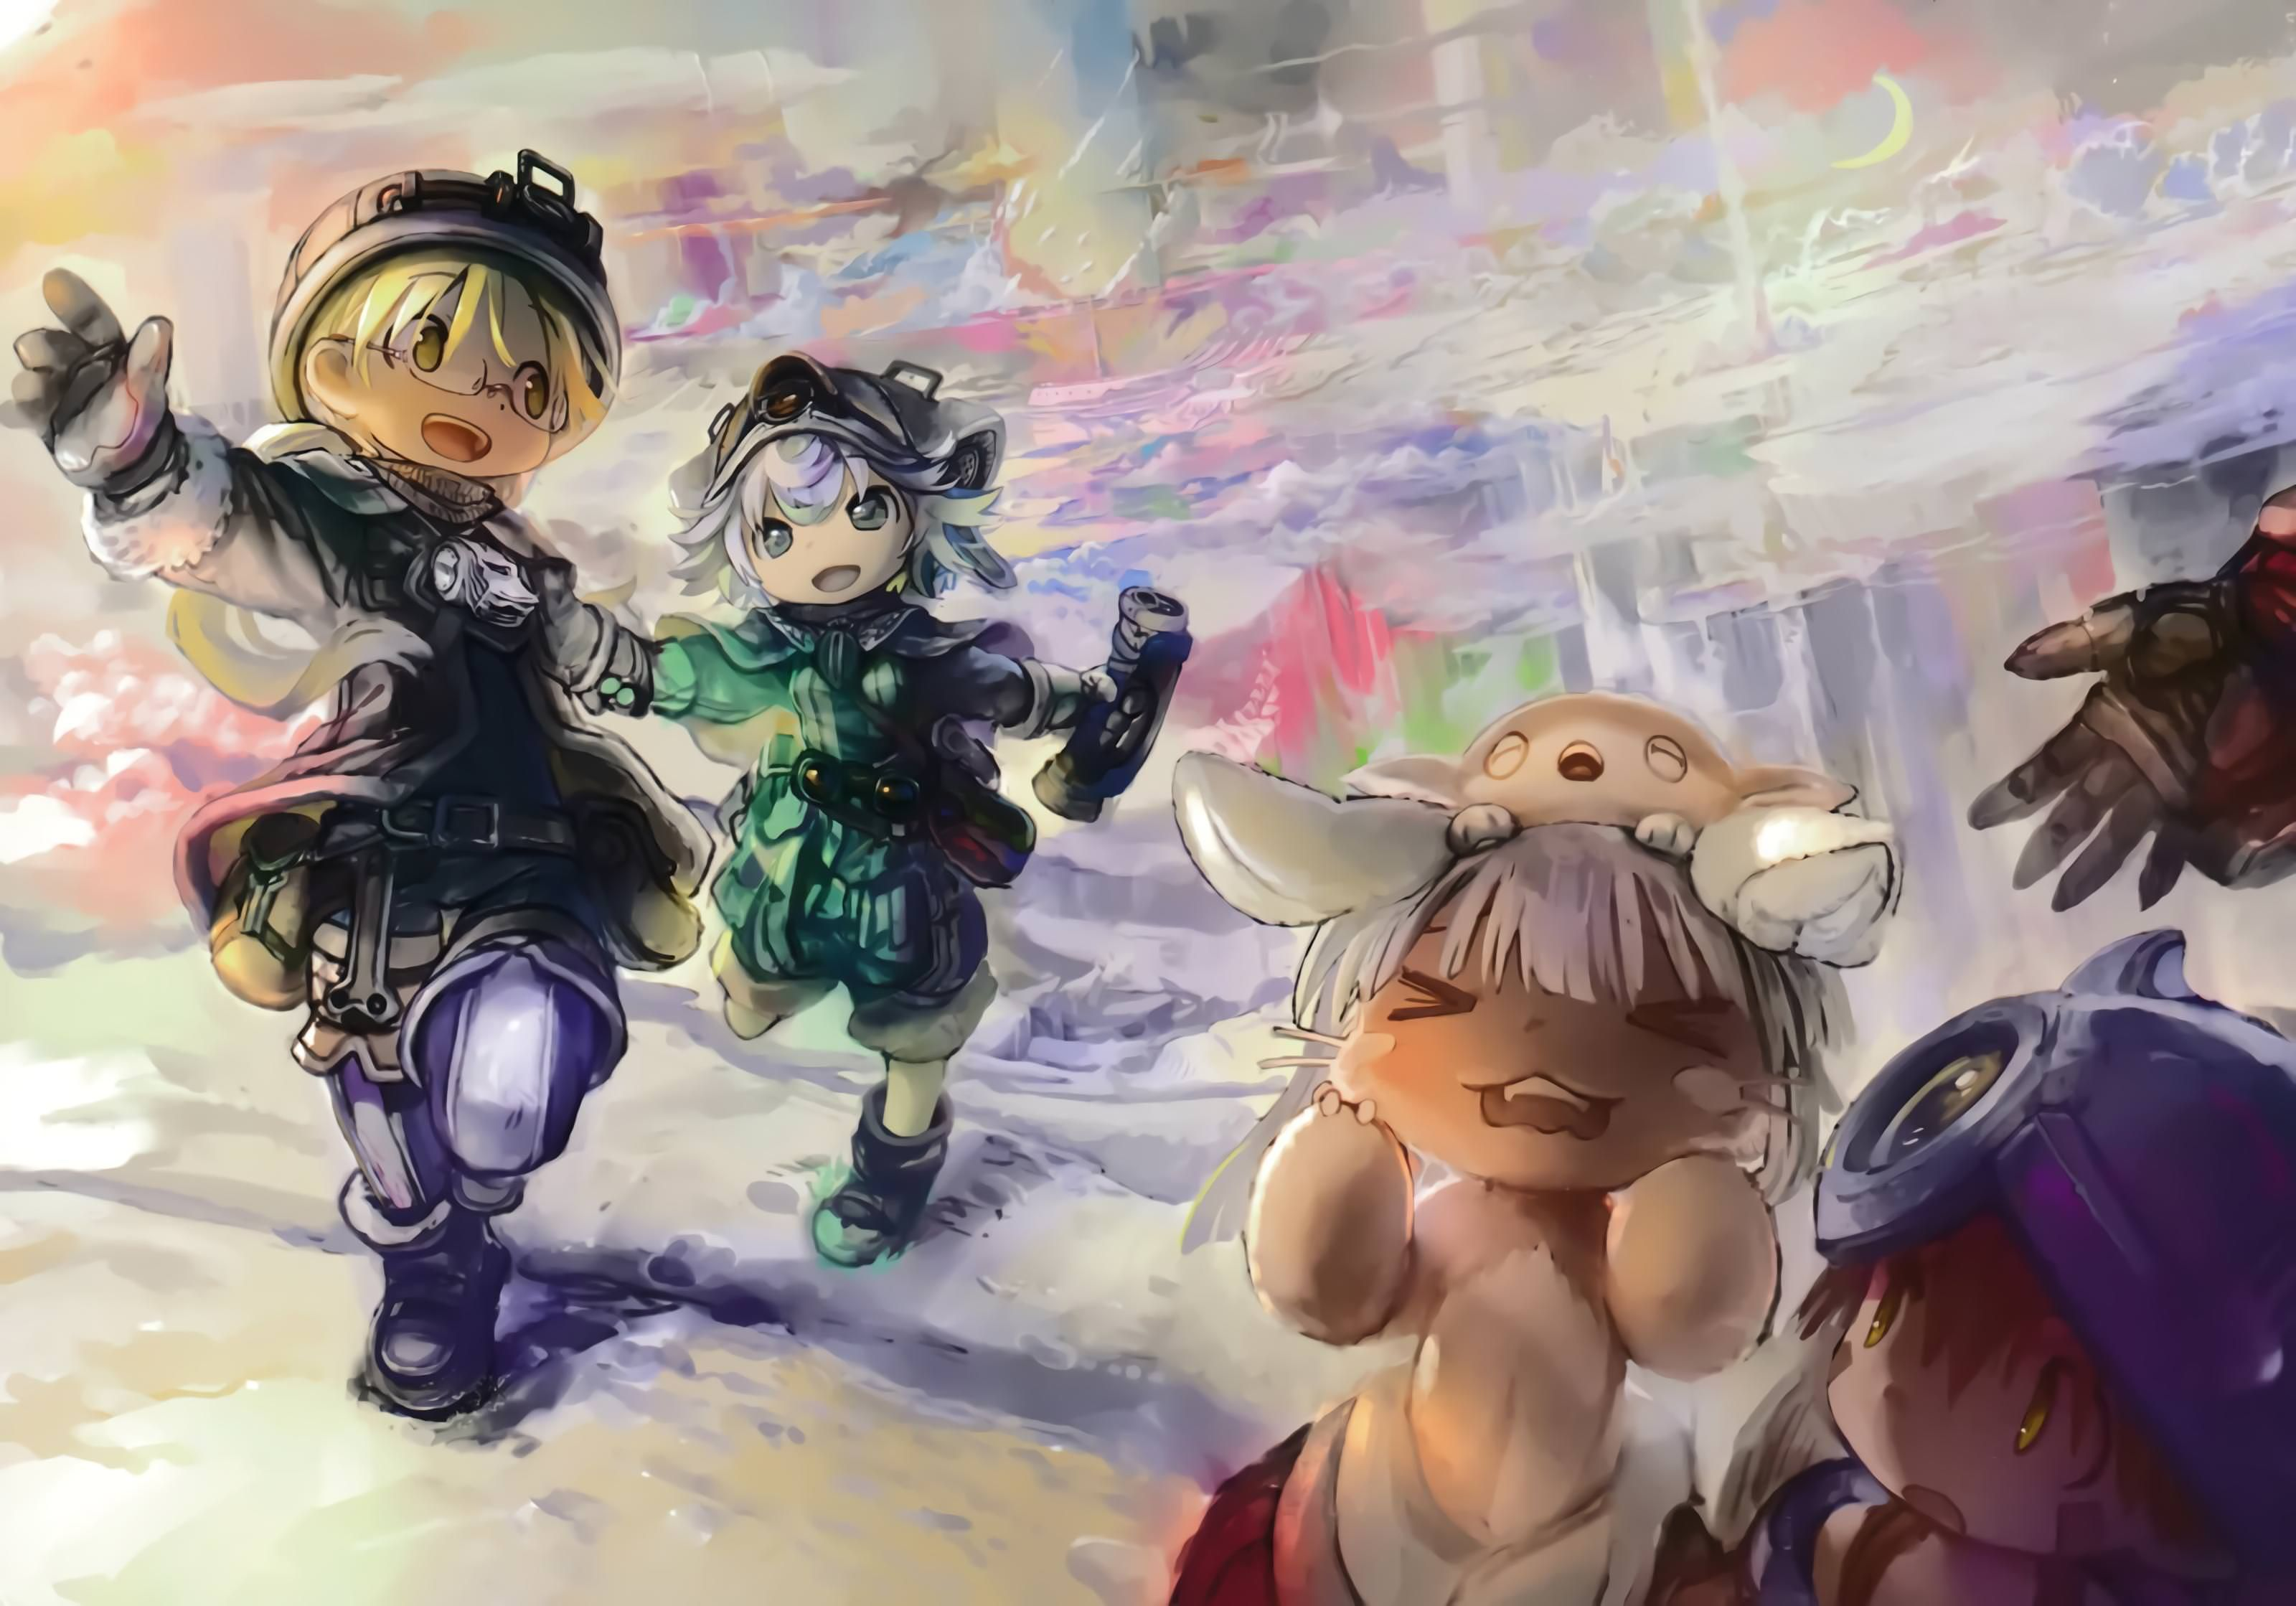 Made In Abyss Wallpapers Covers Volume 1 6 Anime Kawaii Anime Anime Images